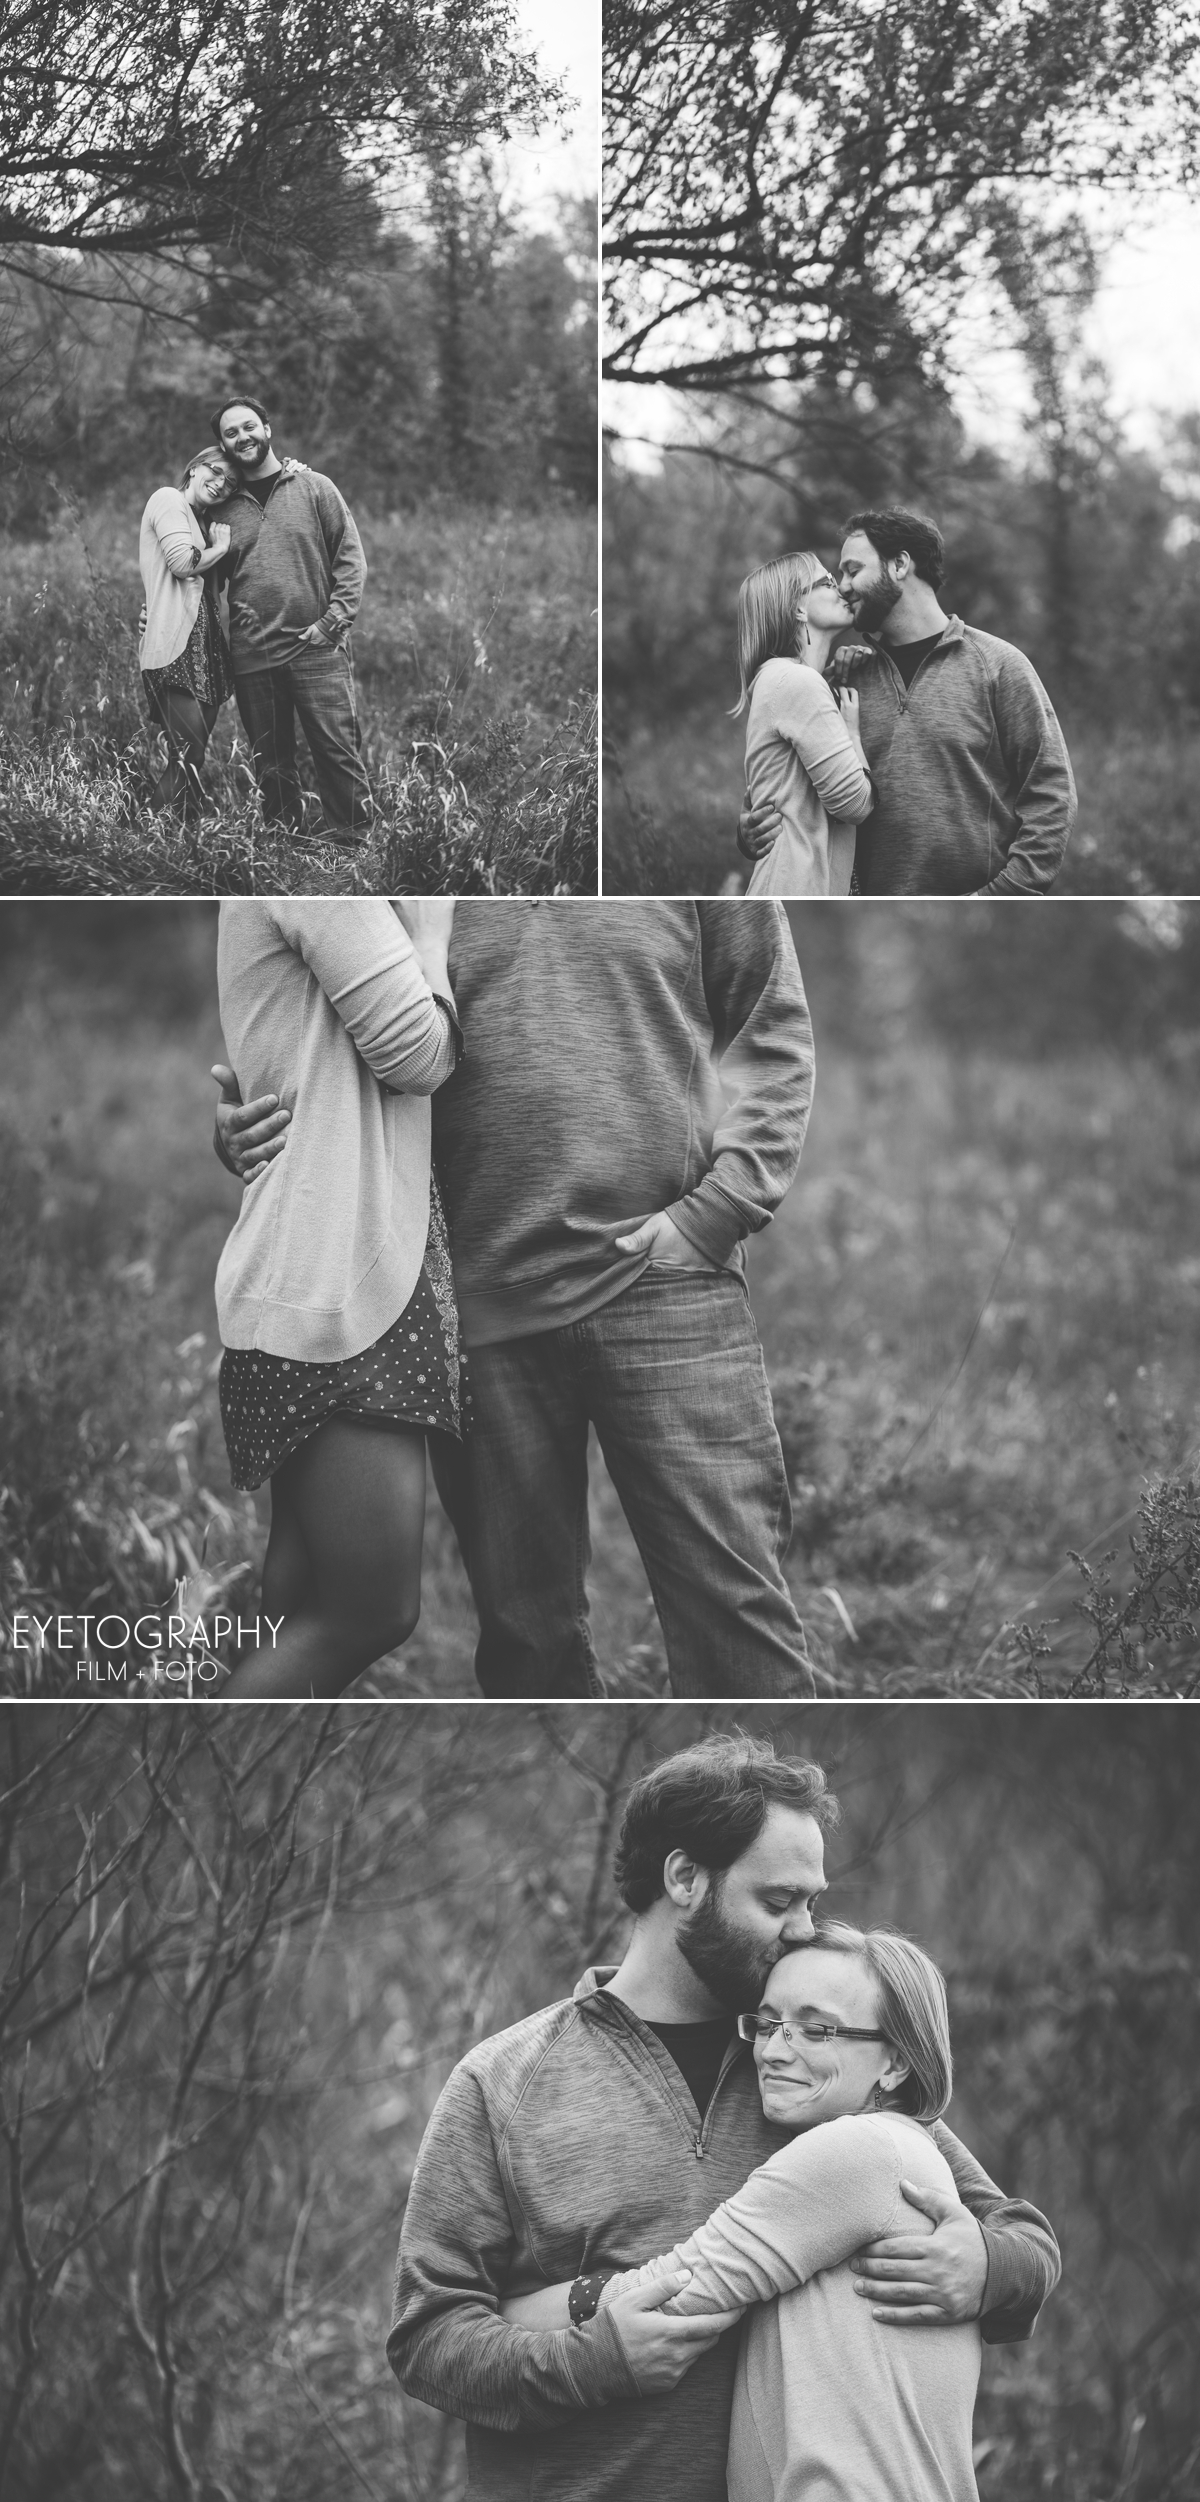 Minneapolis Minnesota Engagement Photography | Eyetography Film + Foto | Kayla + John 2